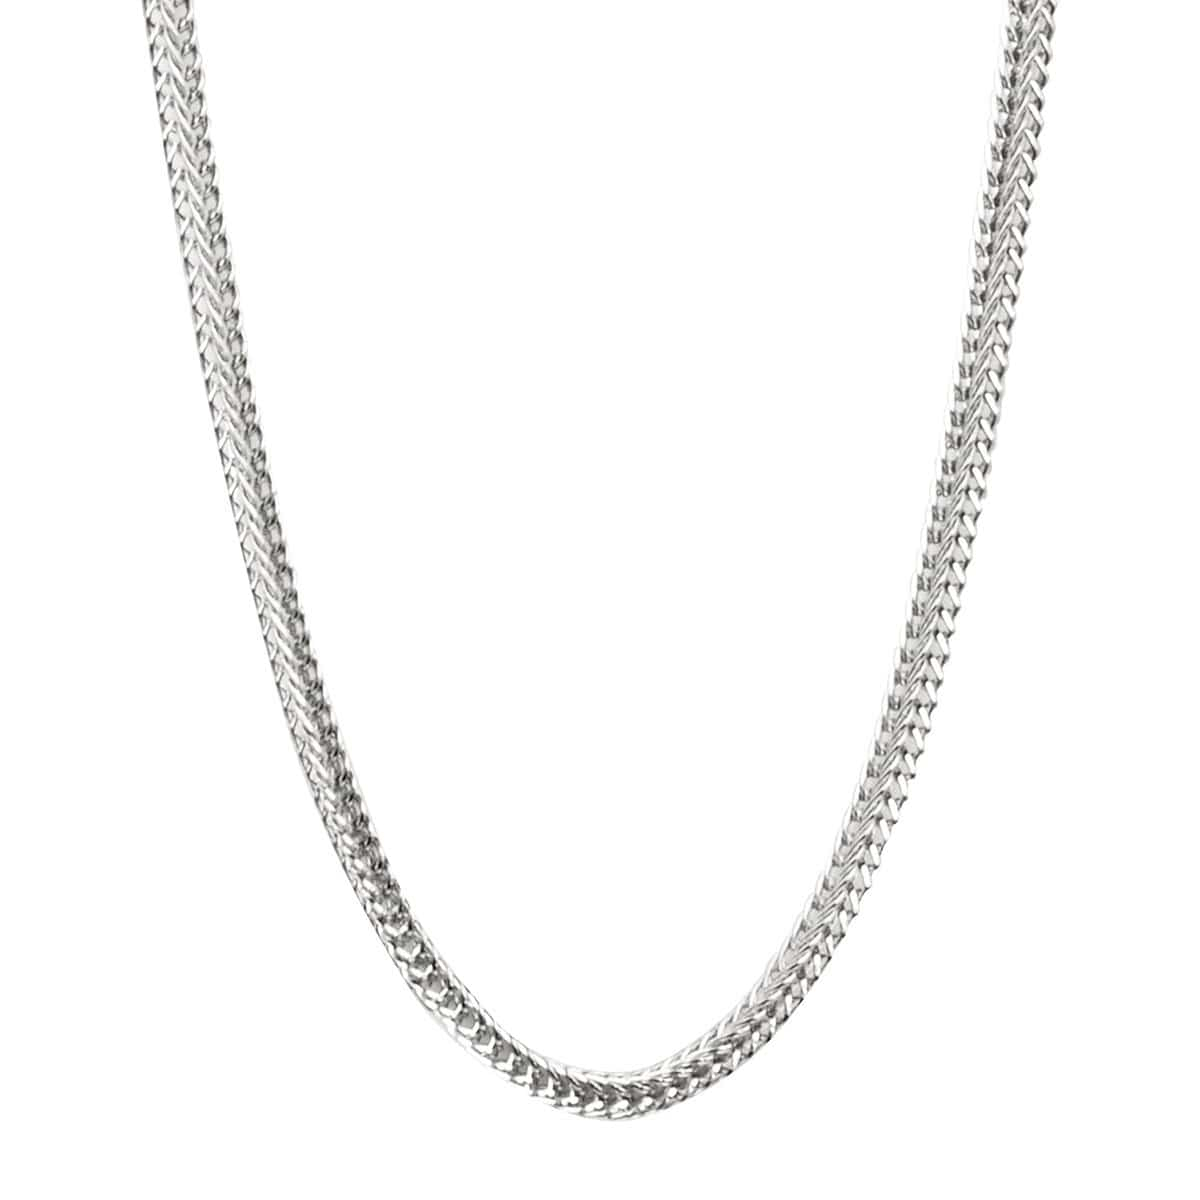 Silver Stainless Steel Polished 1mm Square Wheat Chain Chains